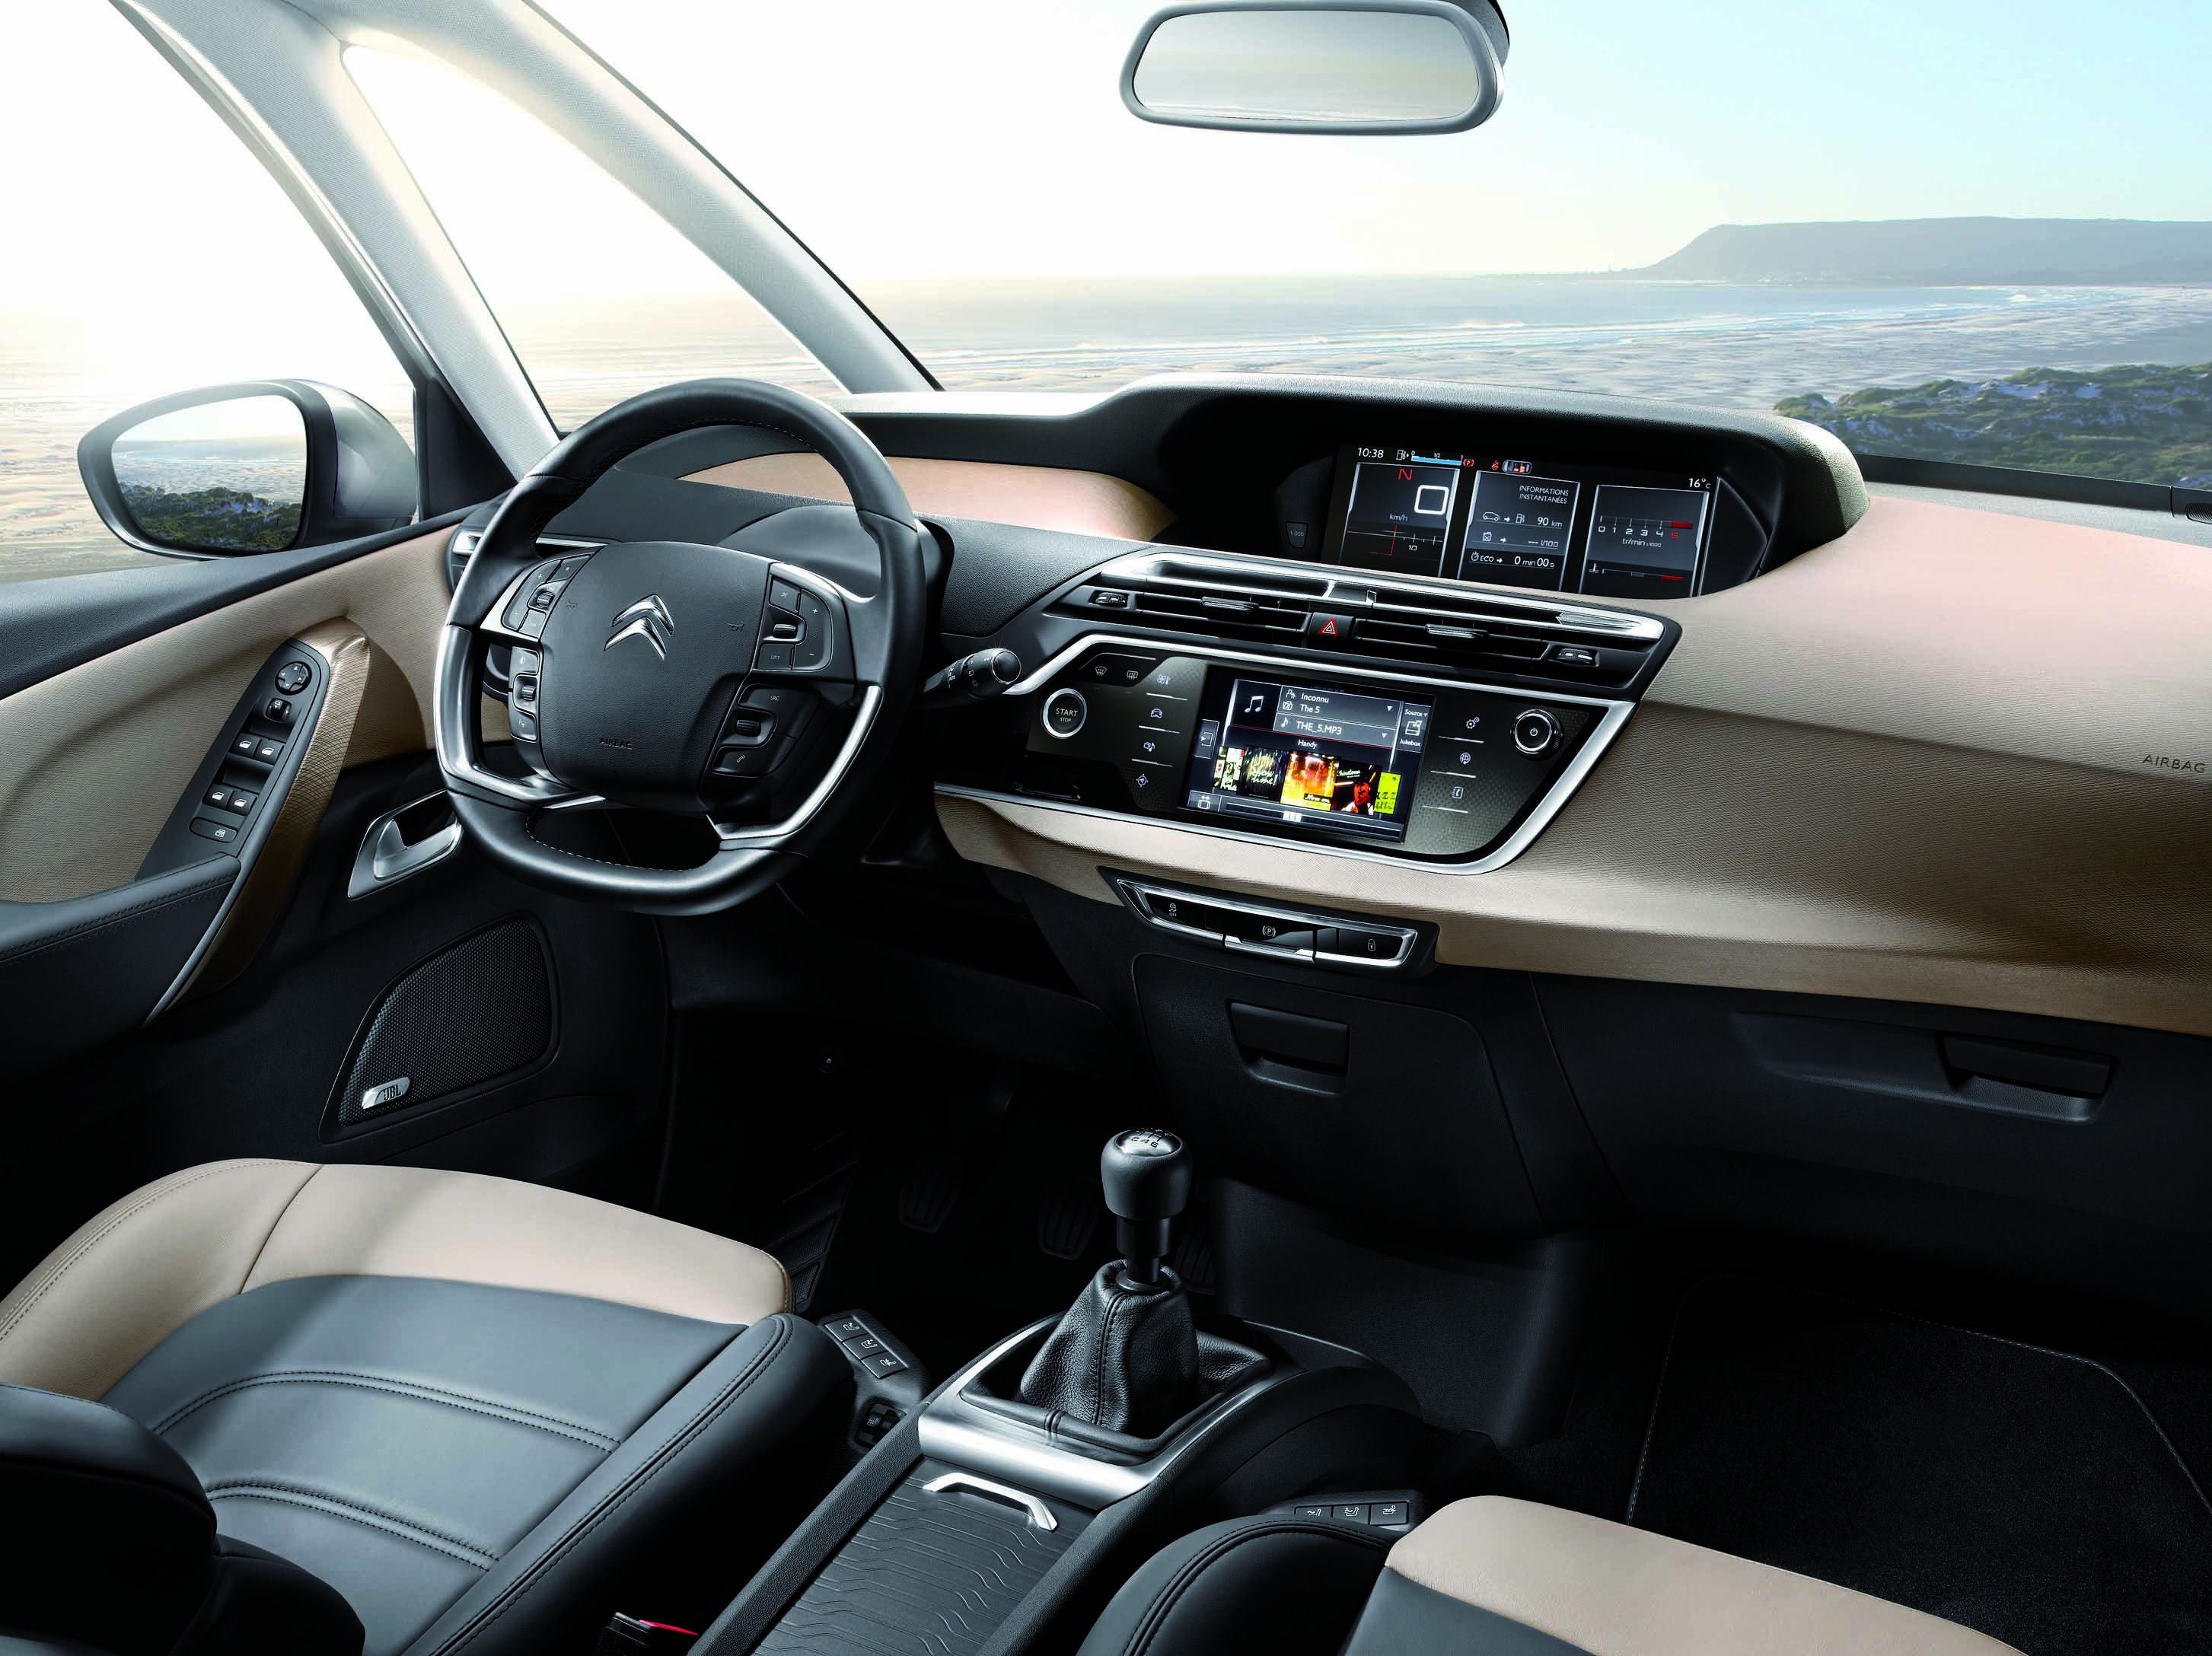 citroen-c4-picasso-2013-attraction-seduction-exklusive-intensive-02